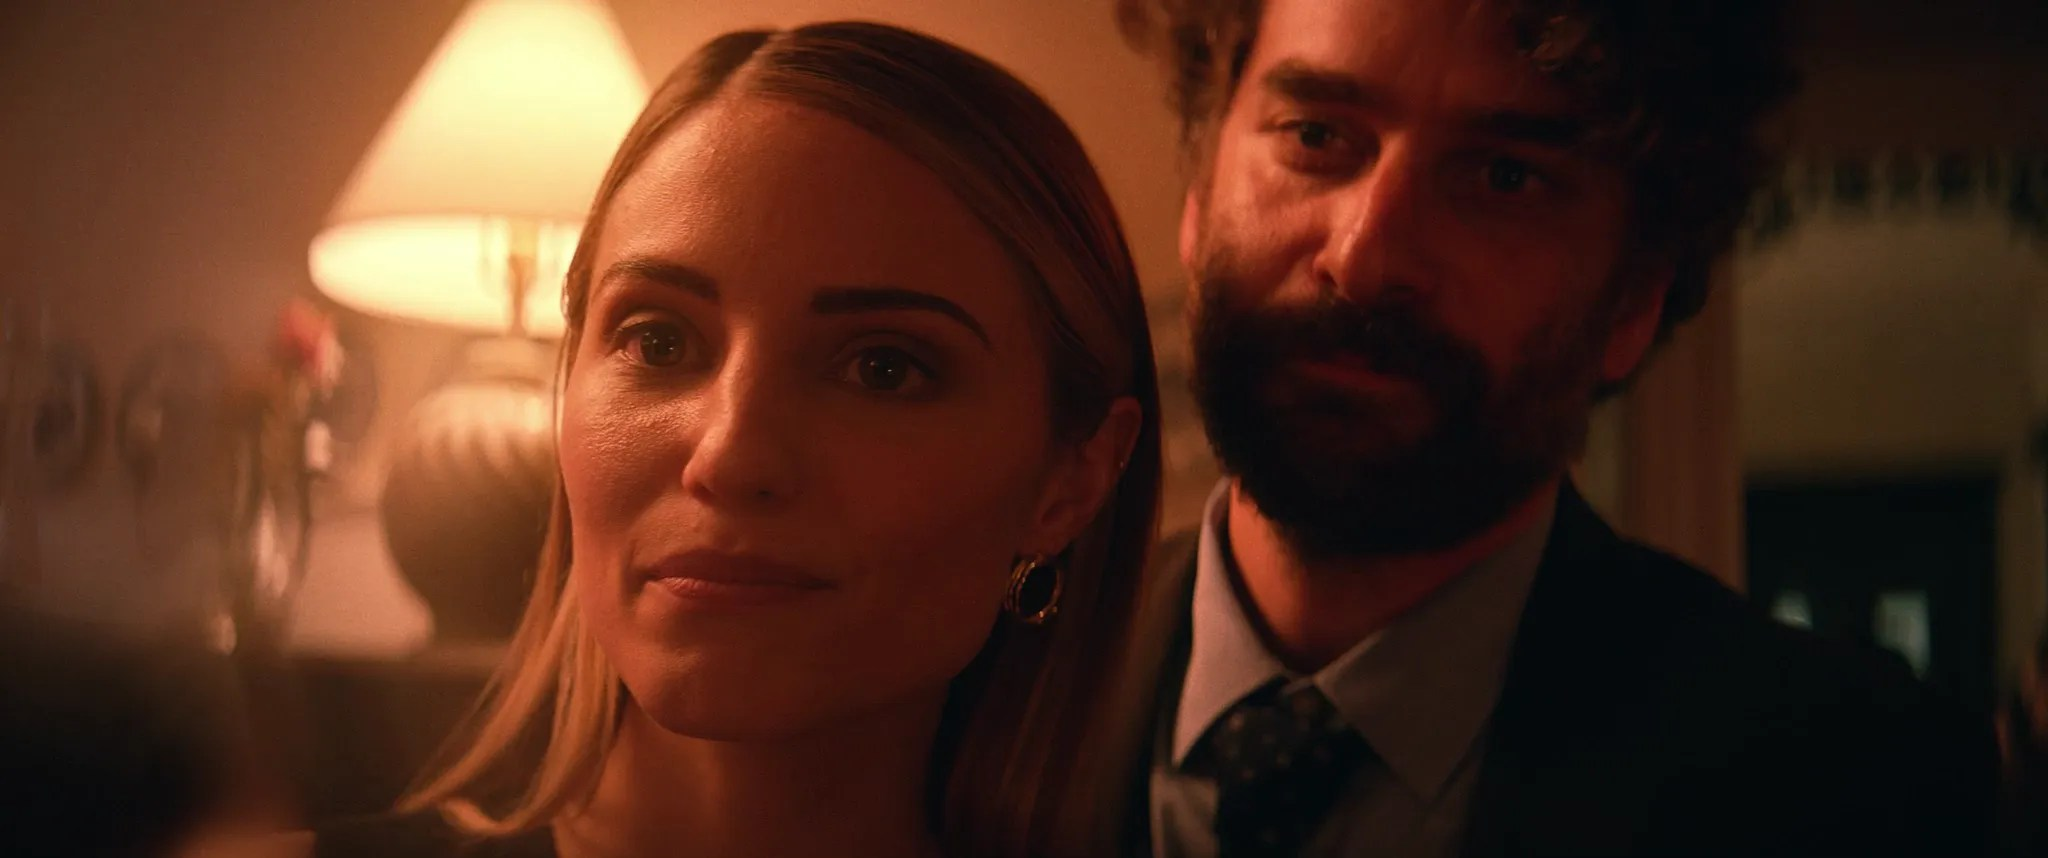 Shiva Baby Review - Dianna Agron and Danny Deferrari